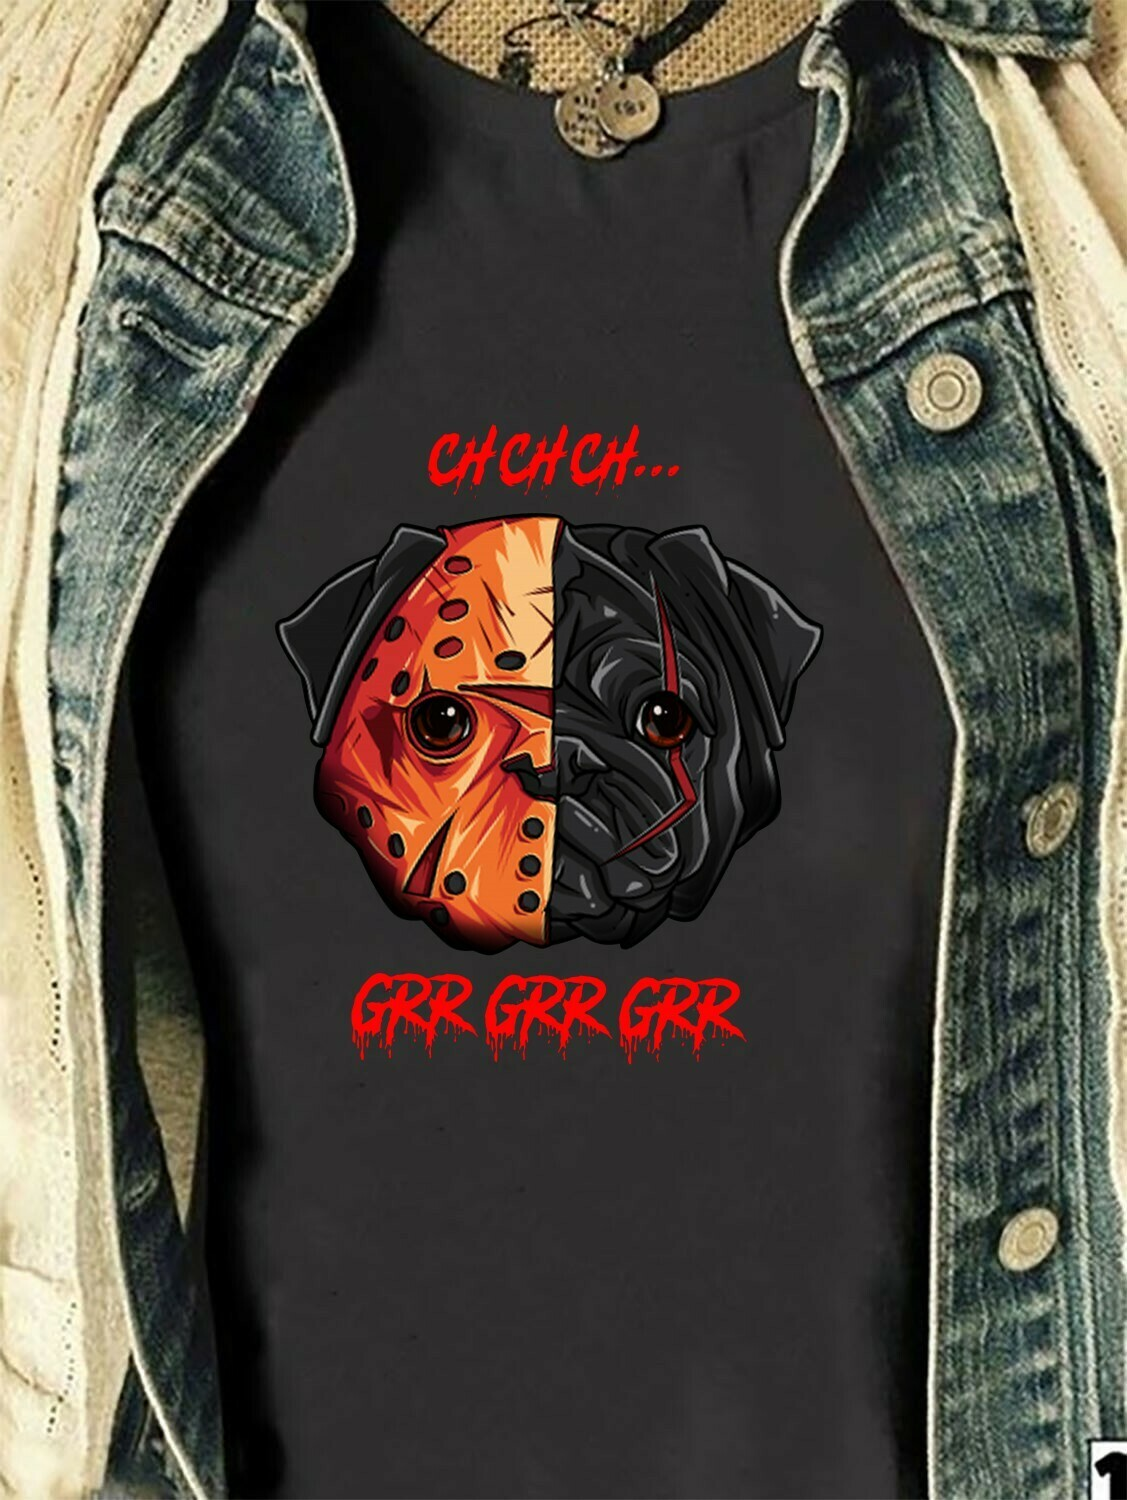 Pug Cosplay Jason Voorhees Joker IT Pennywise Dog Grr Grr Grr Gifts for Dogs Lovers Villains Halloween Horror Movie Mashup T-Shirt Long Sleeve Sweatshirt Hoodie Jolly Family Gifts